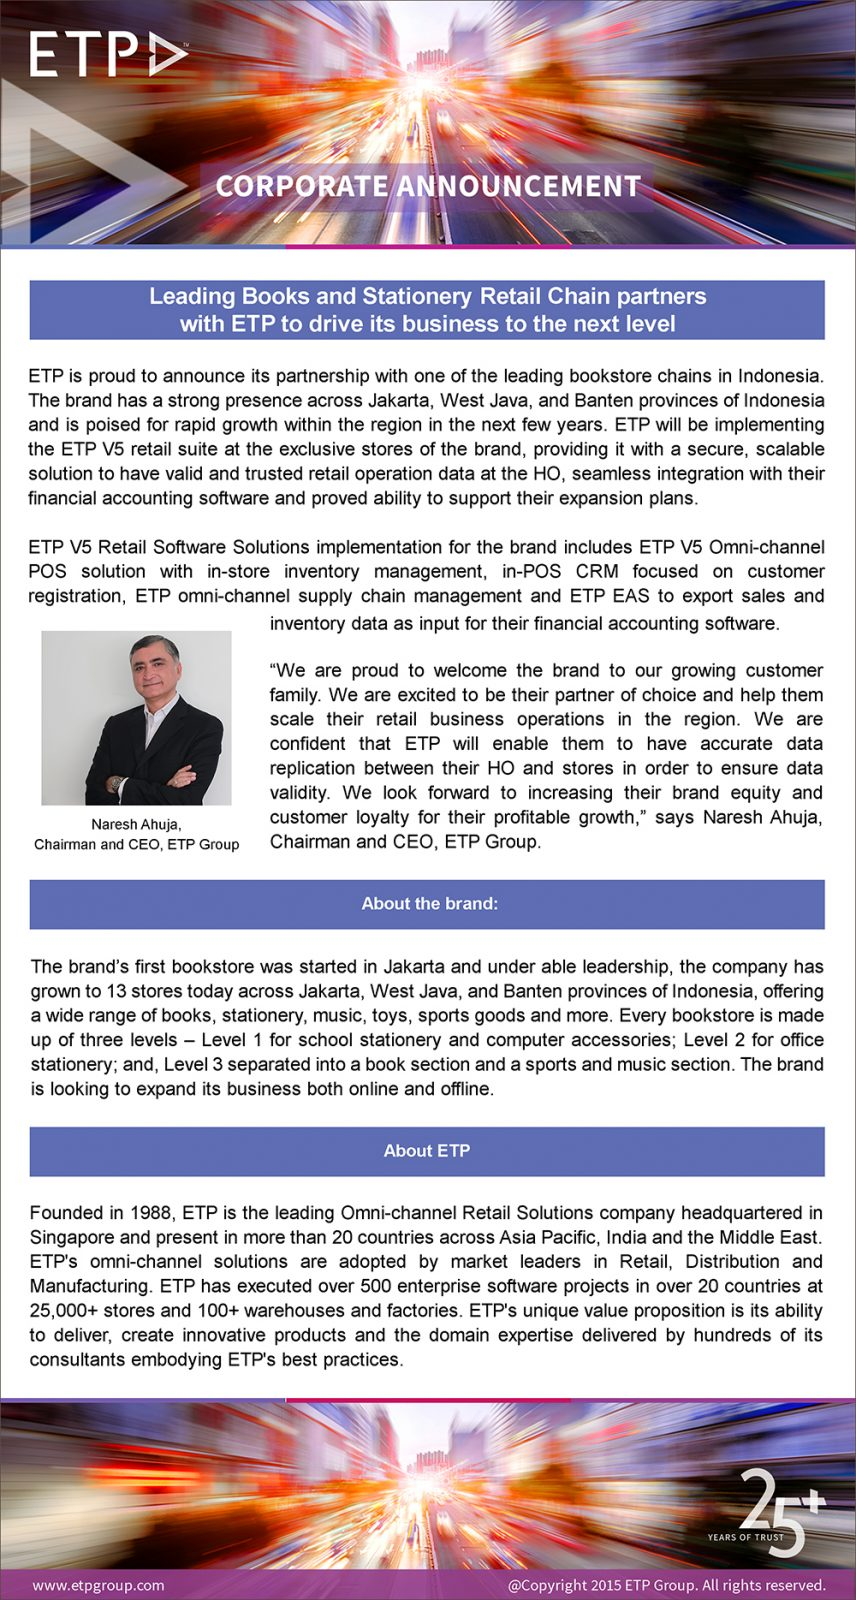 Leading Books and Stationery Retail Chain partners with ETP to drive its business to the next level